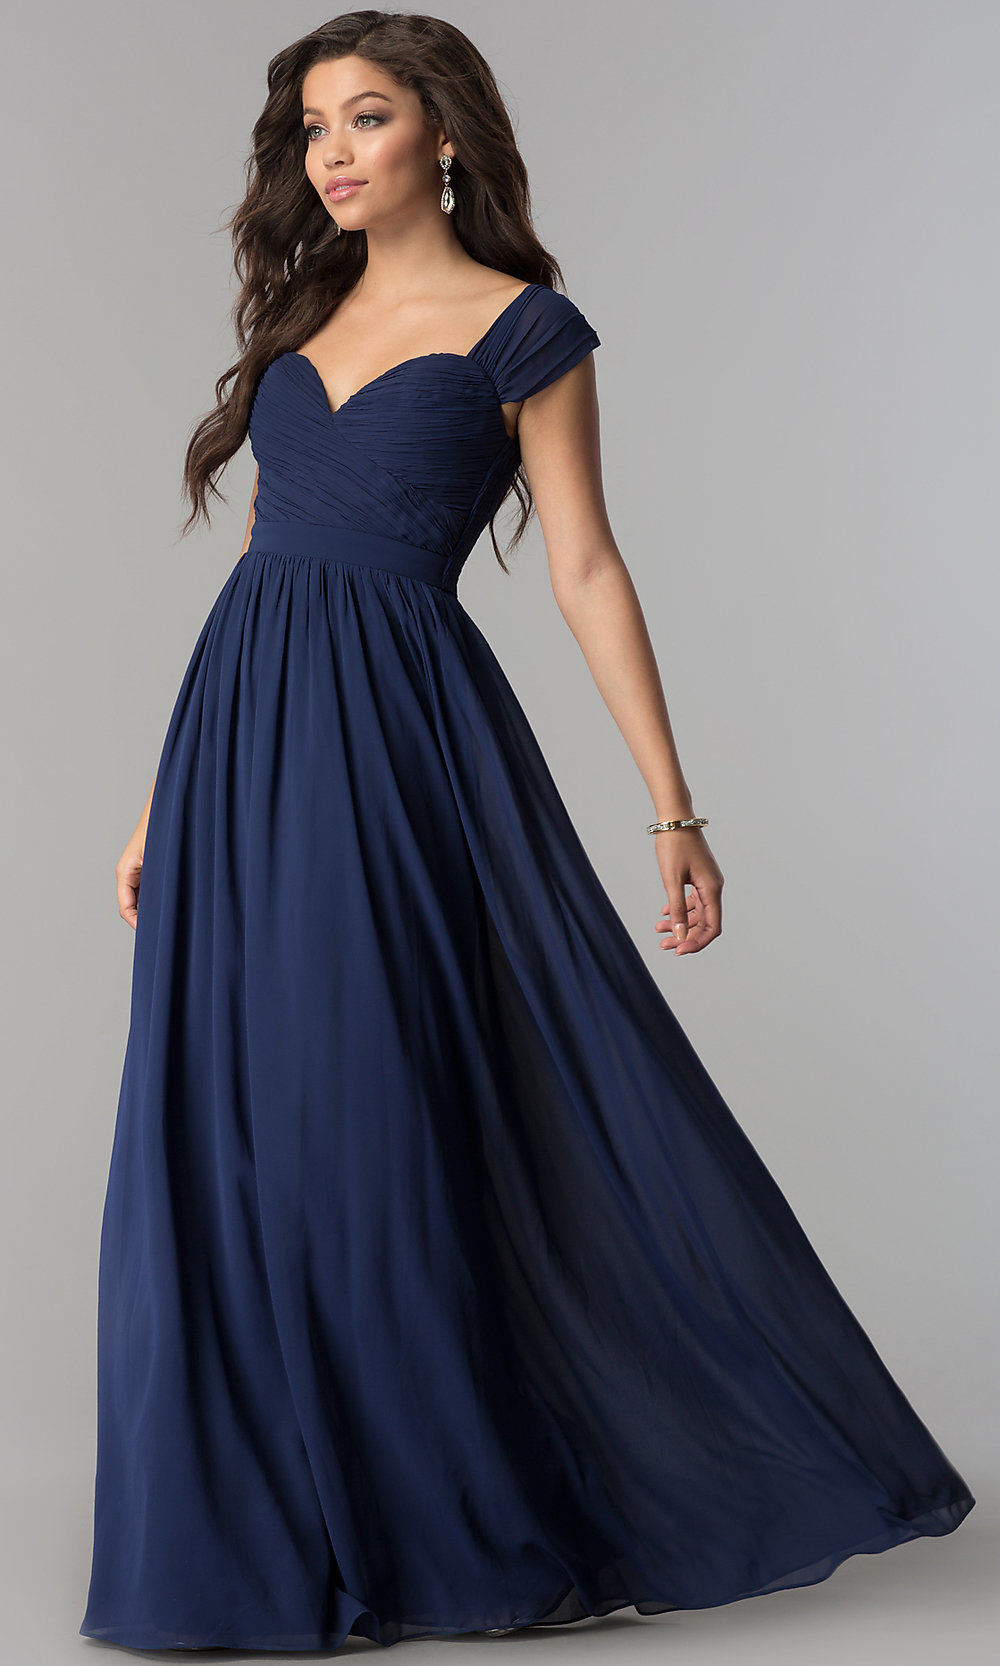 Sleeved Prom Dresses